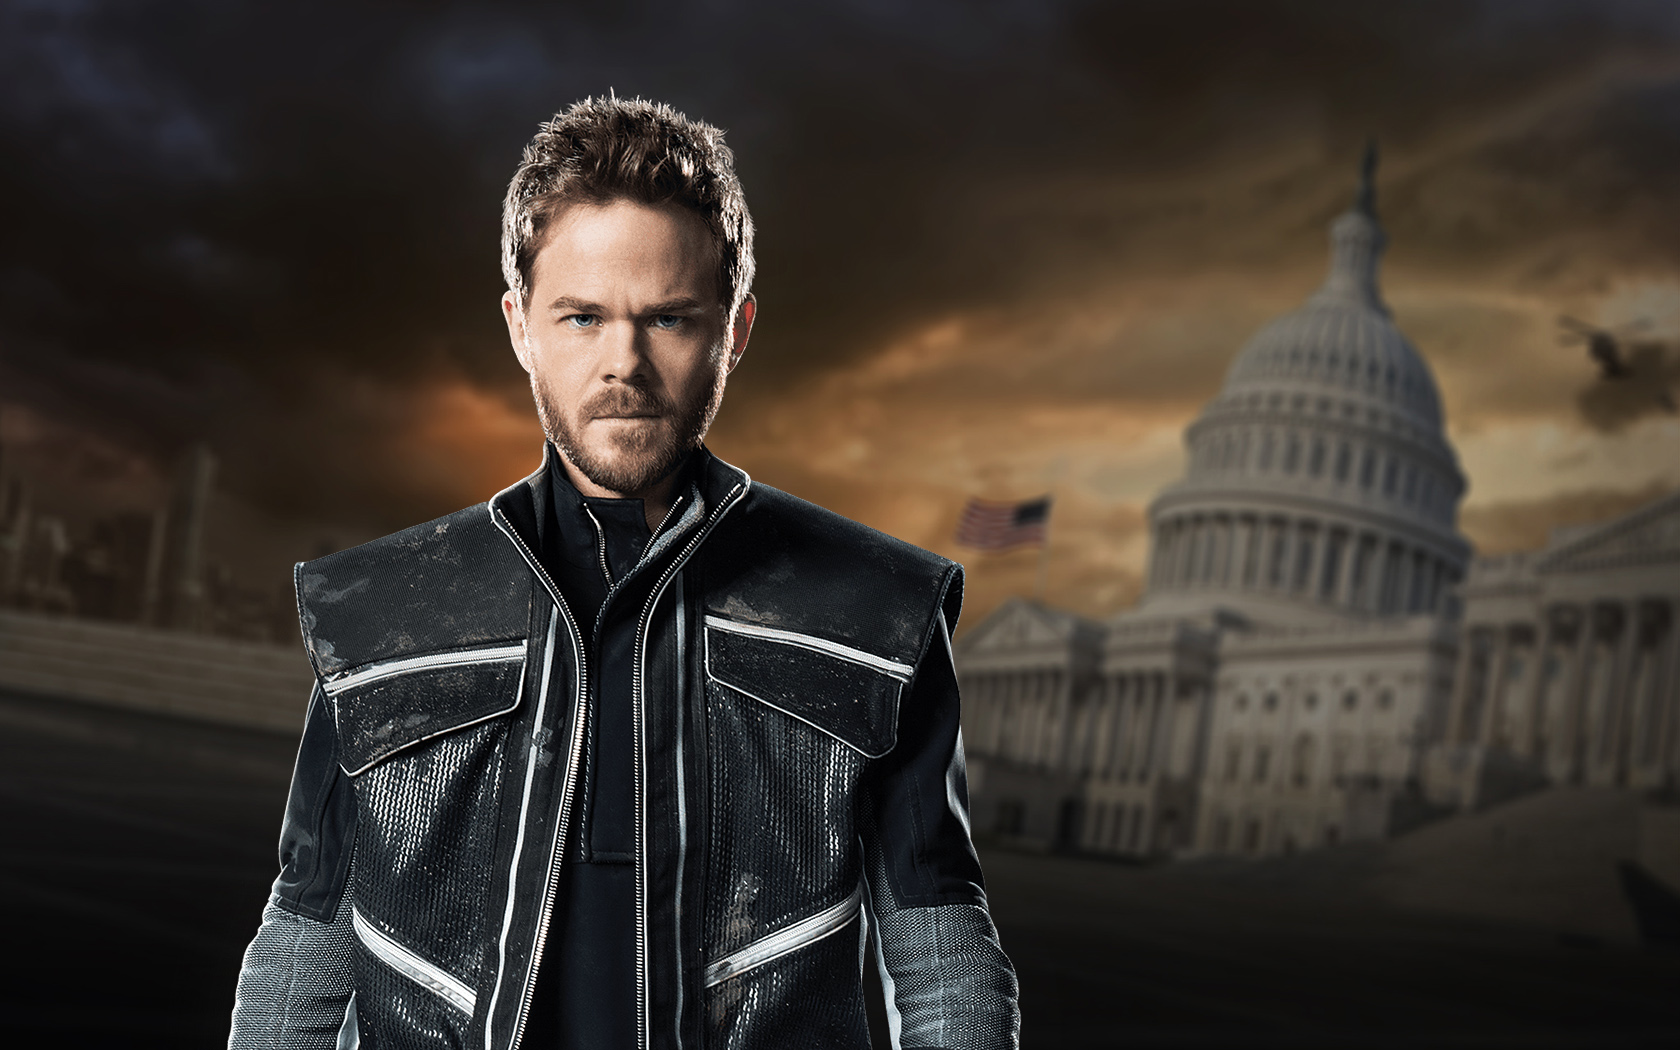 1680x1050 - Shawn Ashmore Wallpapers 7